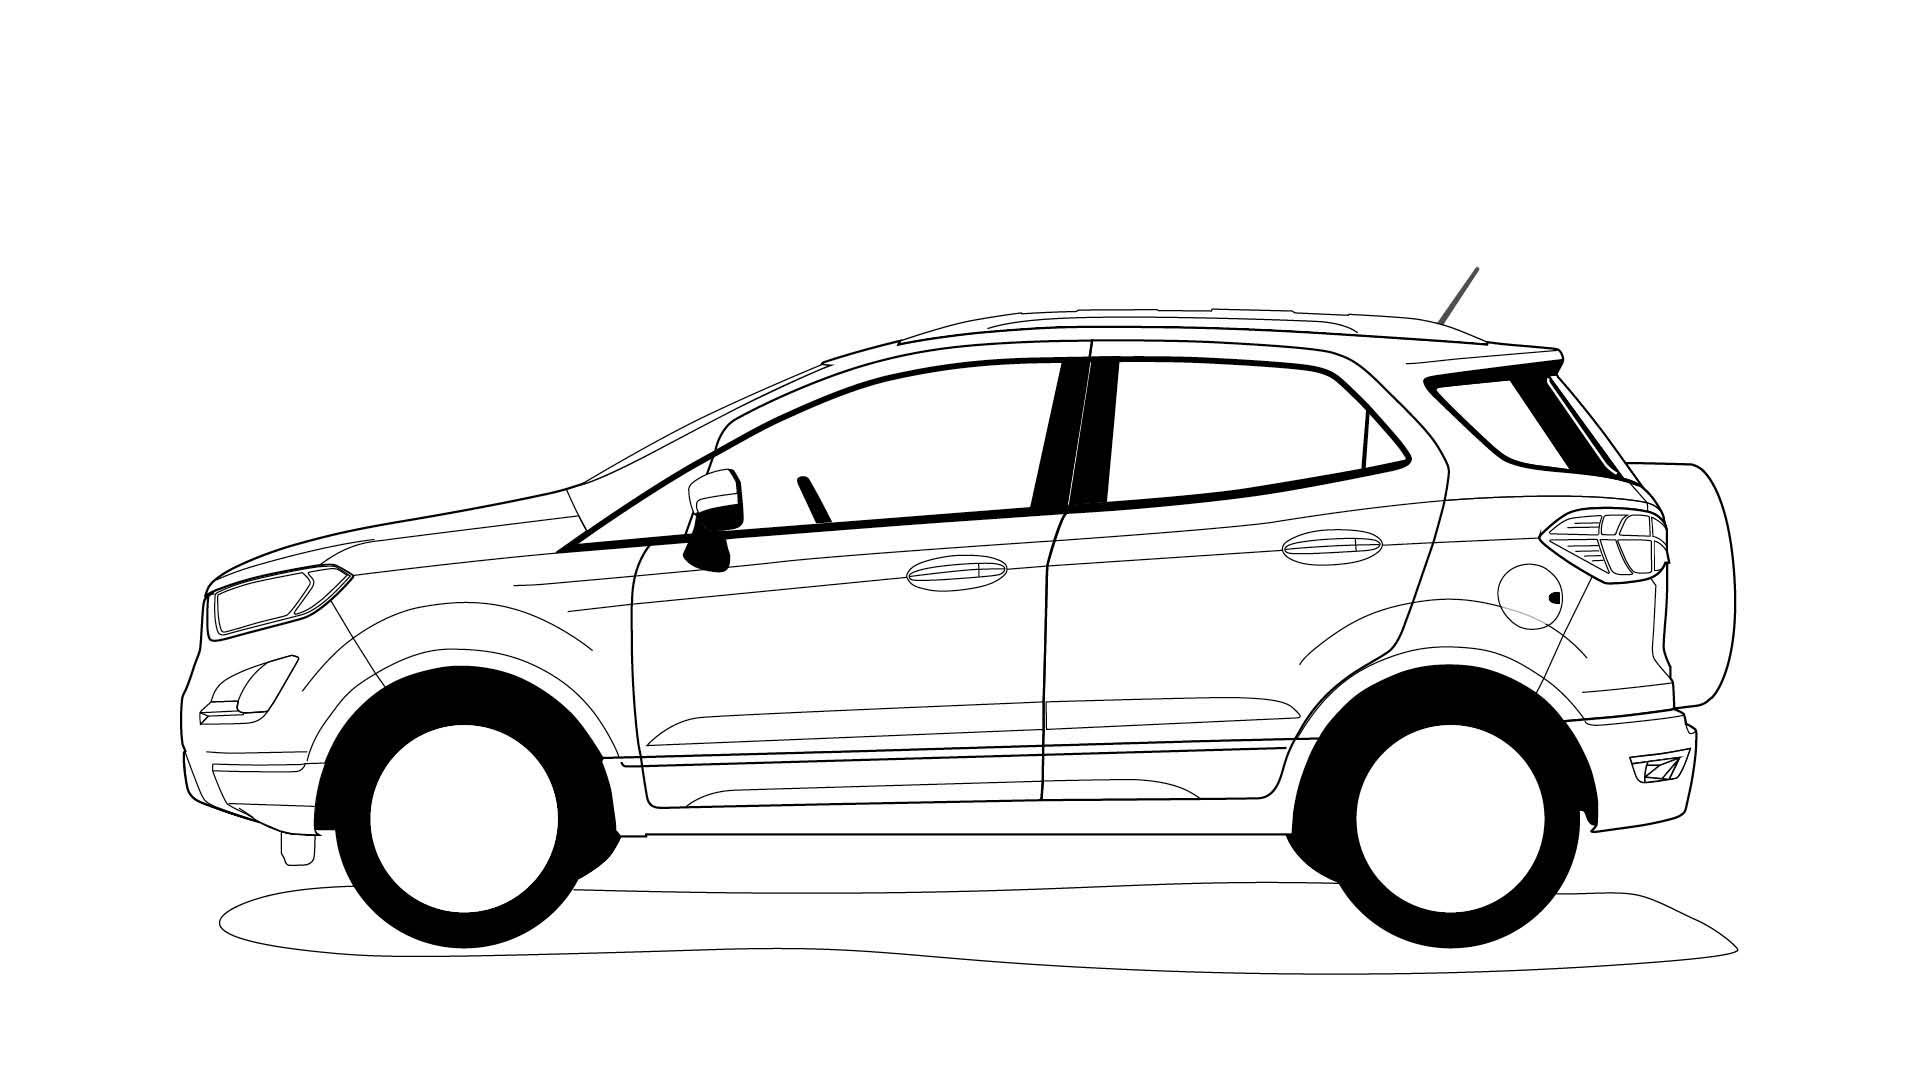 Ford EcoSport outline